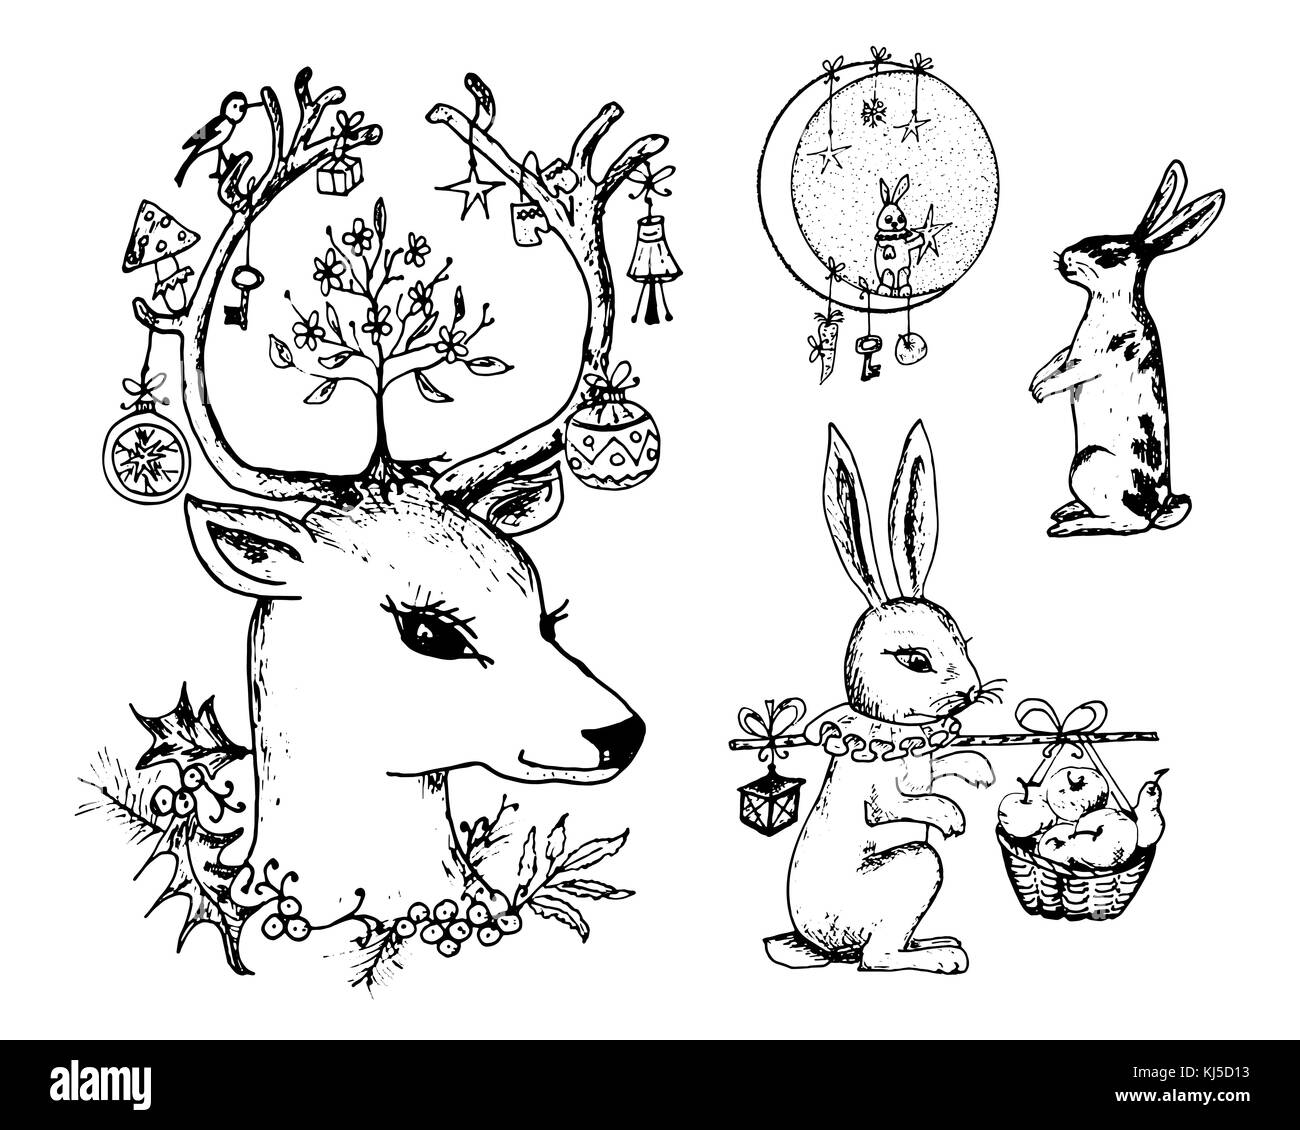 Christmas deer and animal with flowers in the horns. New Year hare and rabbit or bunny in the forest. winter holidays. Stock Vector